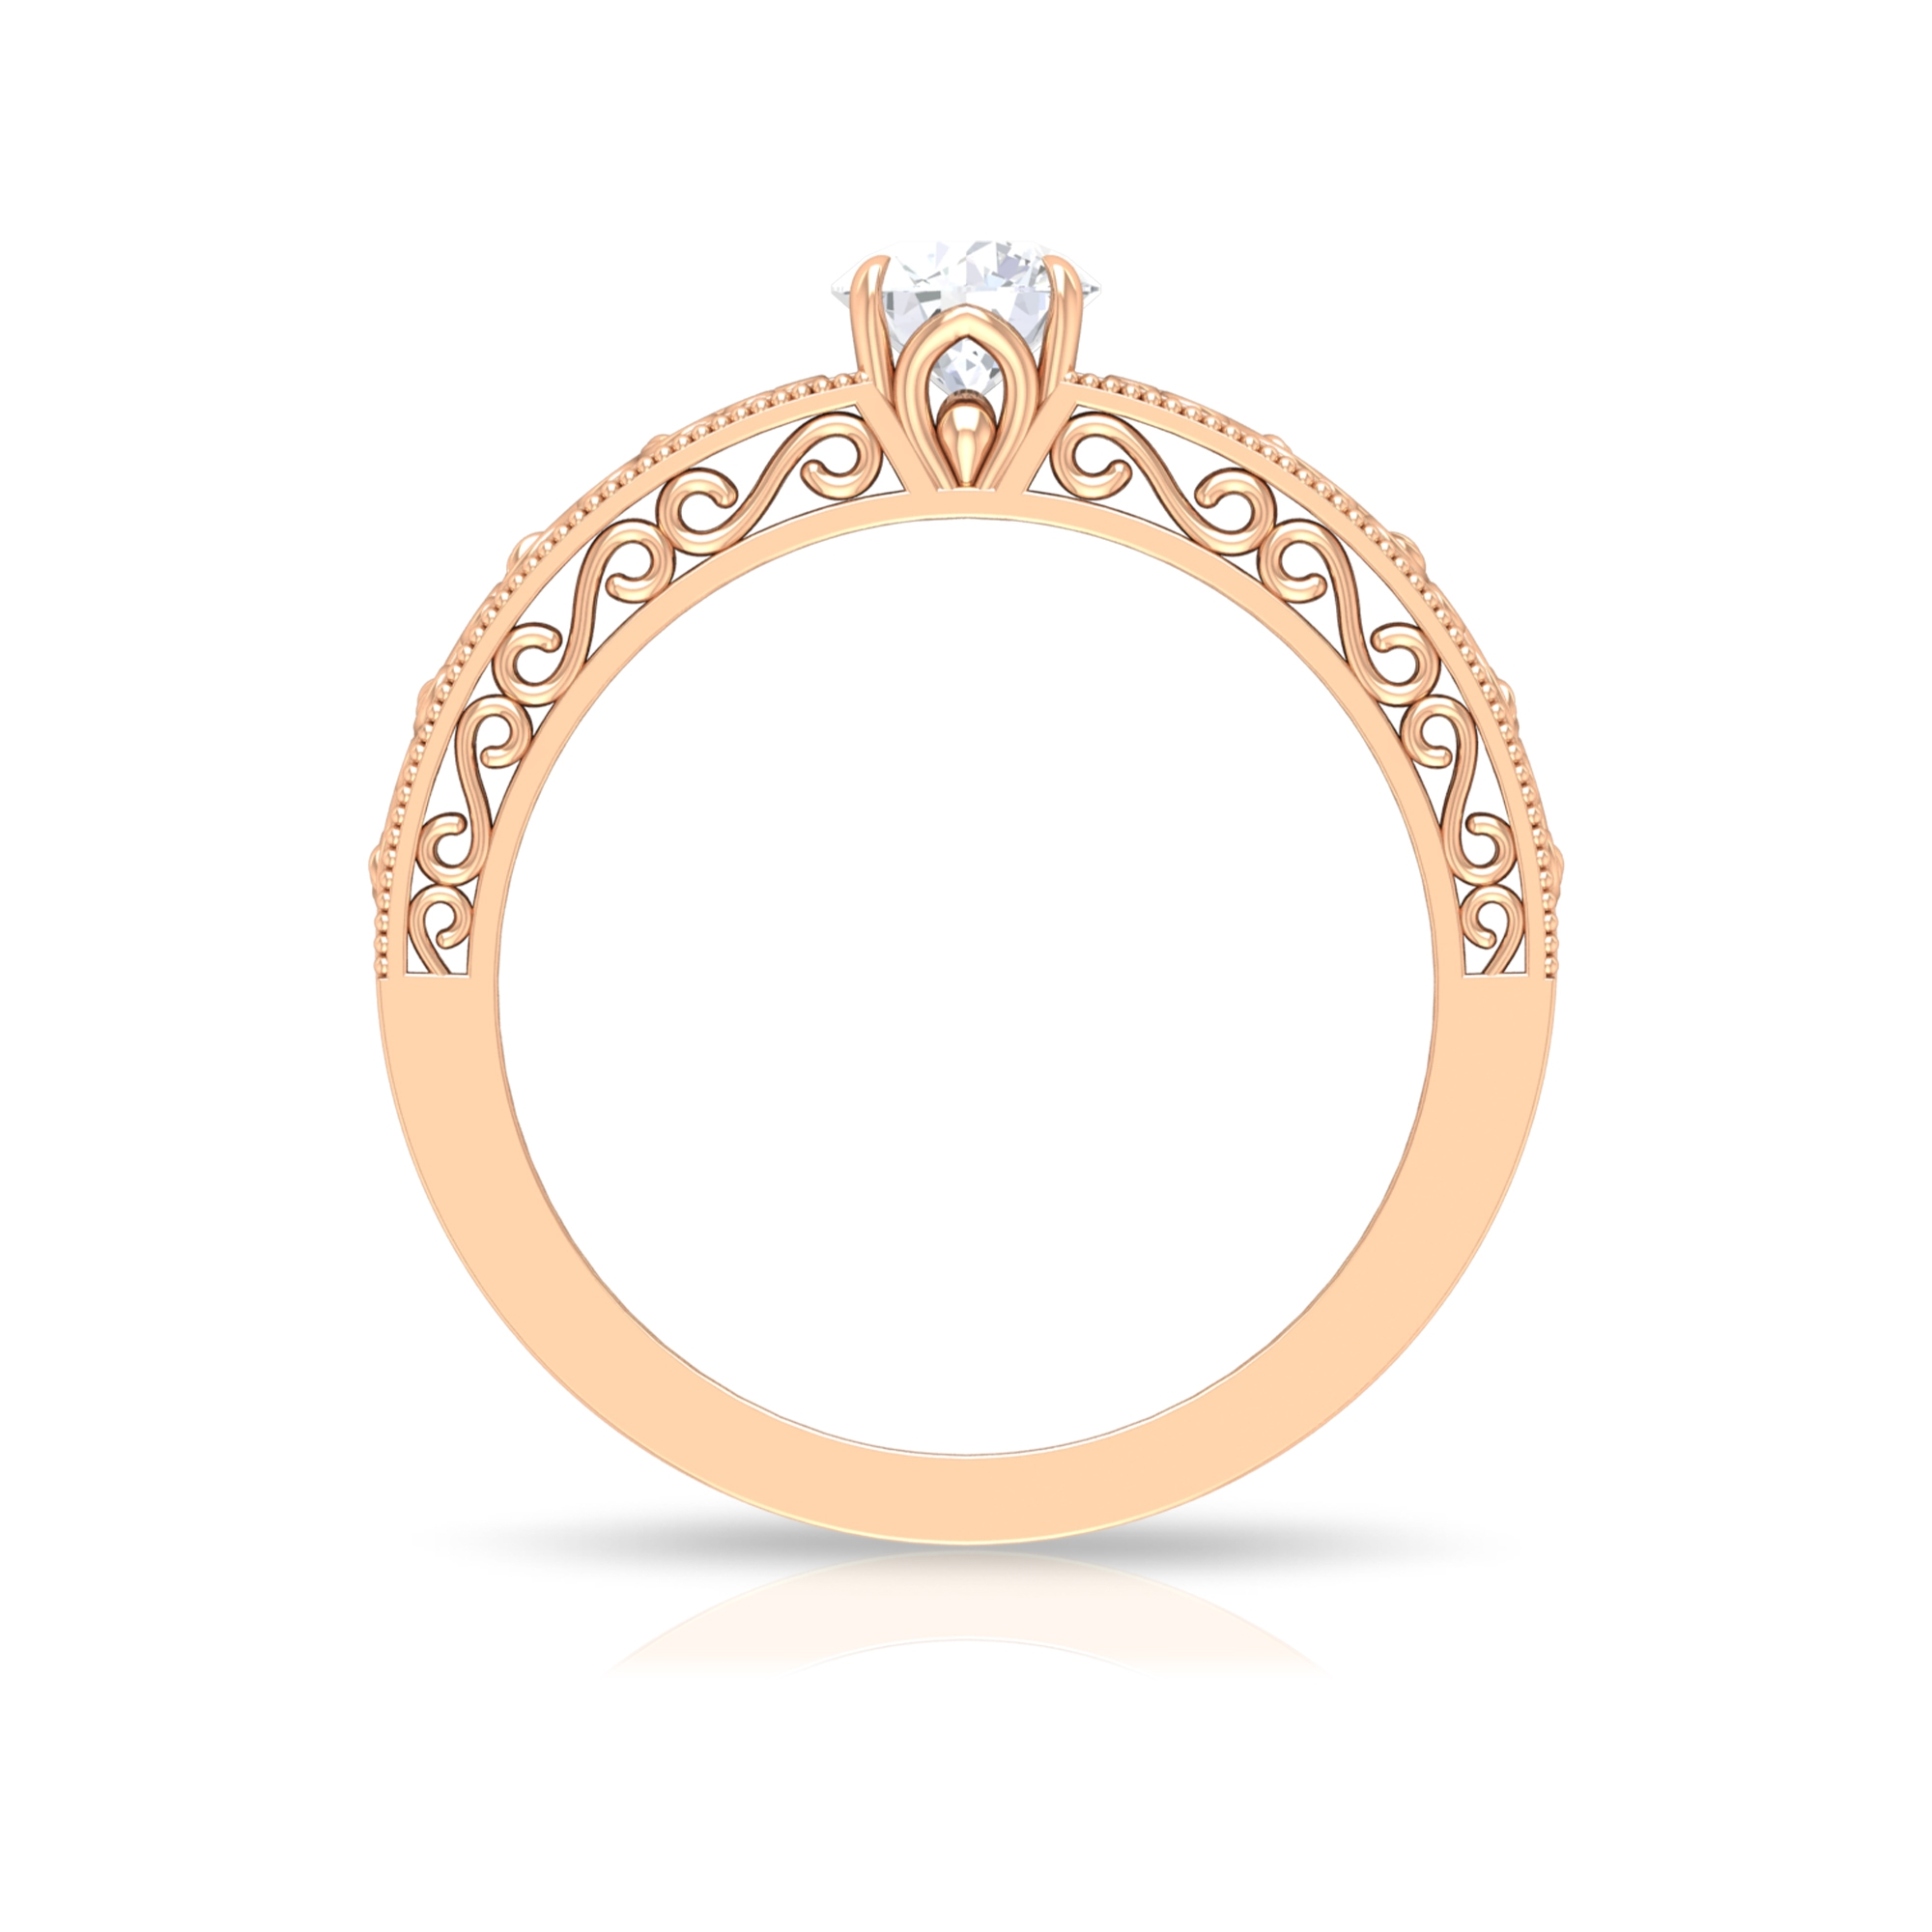 5 MM Claw Set Round Cut Solitaire Diamond Filigree Ring